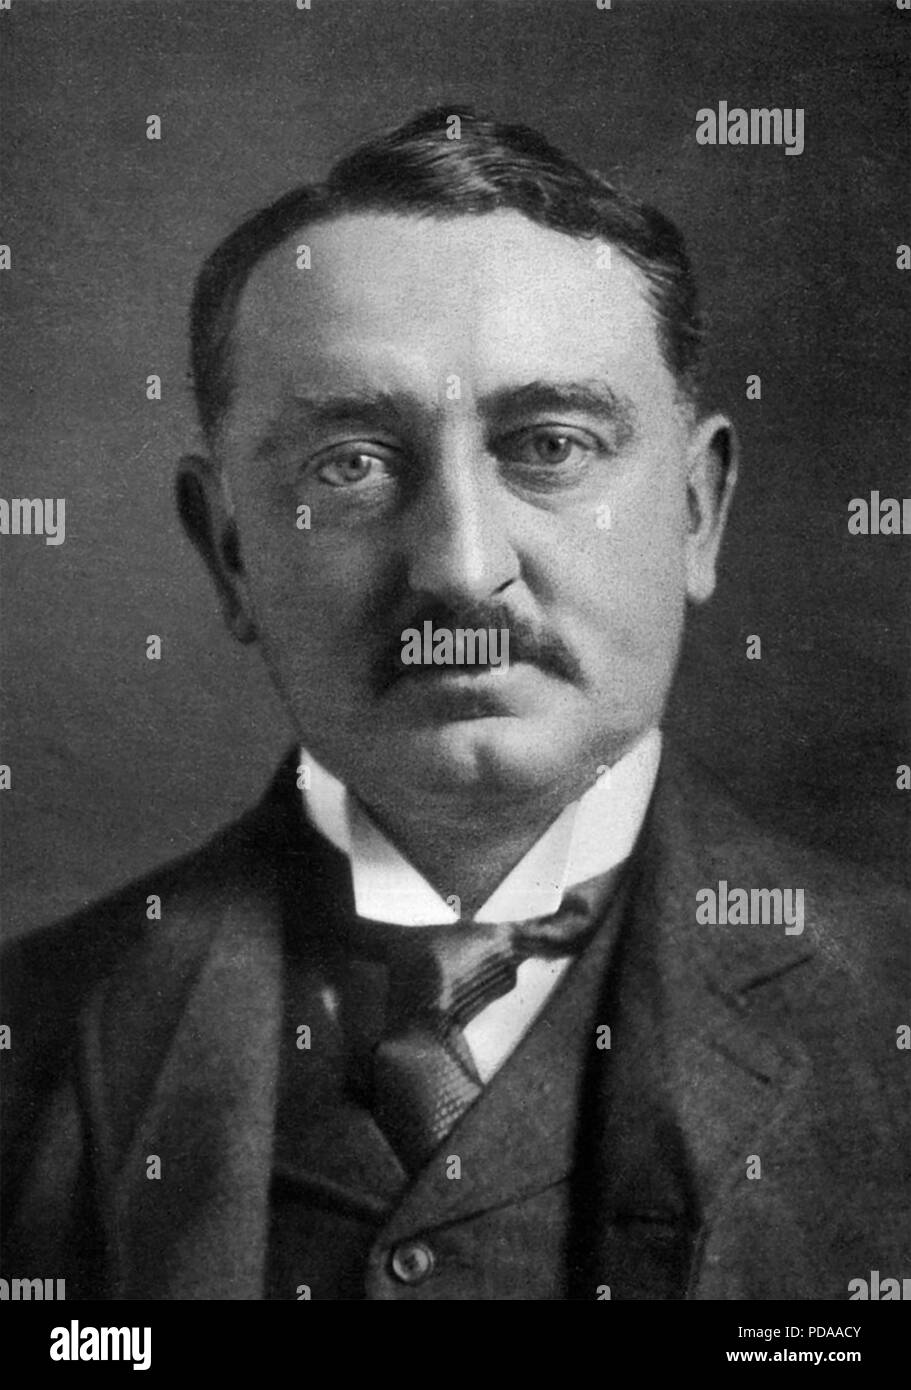 CECIL RHODES (1853-1902) English businessman, mining magnate and South African politician, about 1900 - Stock Image